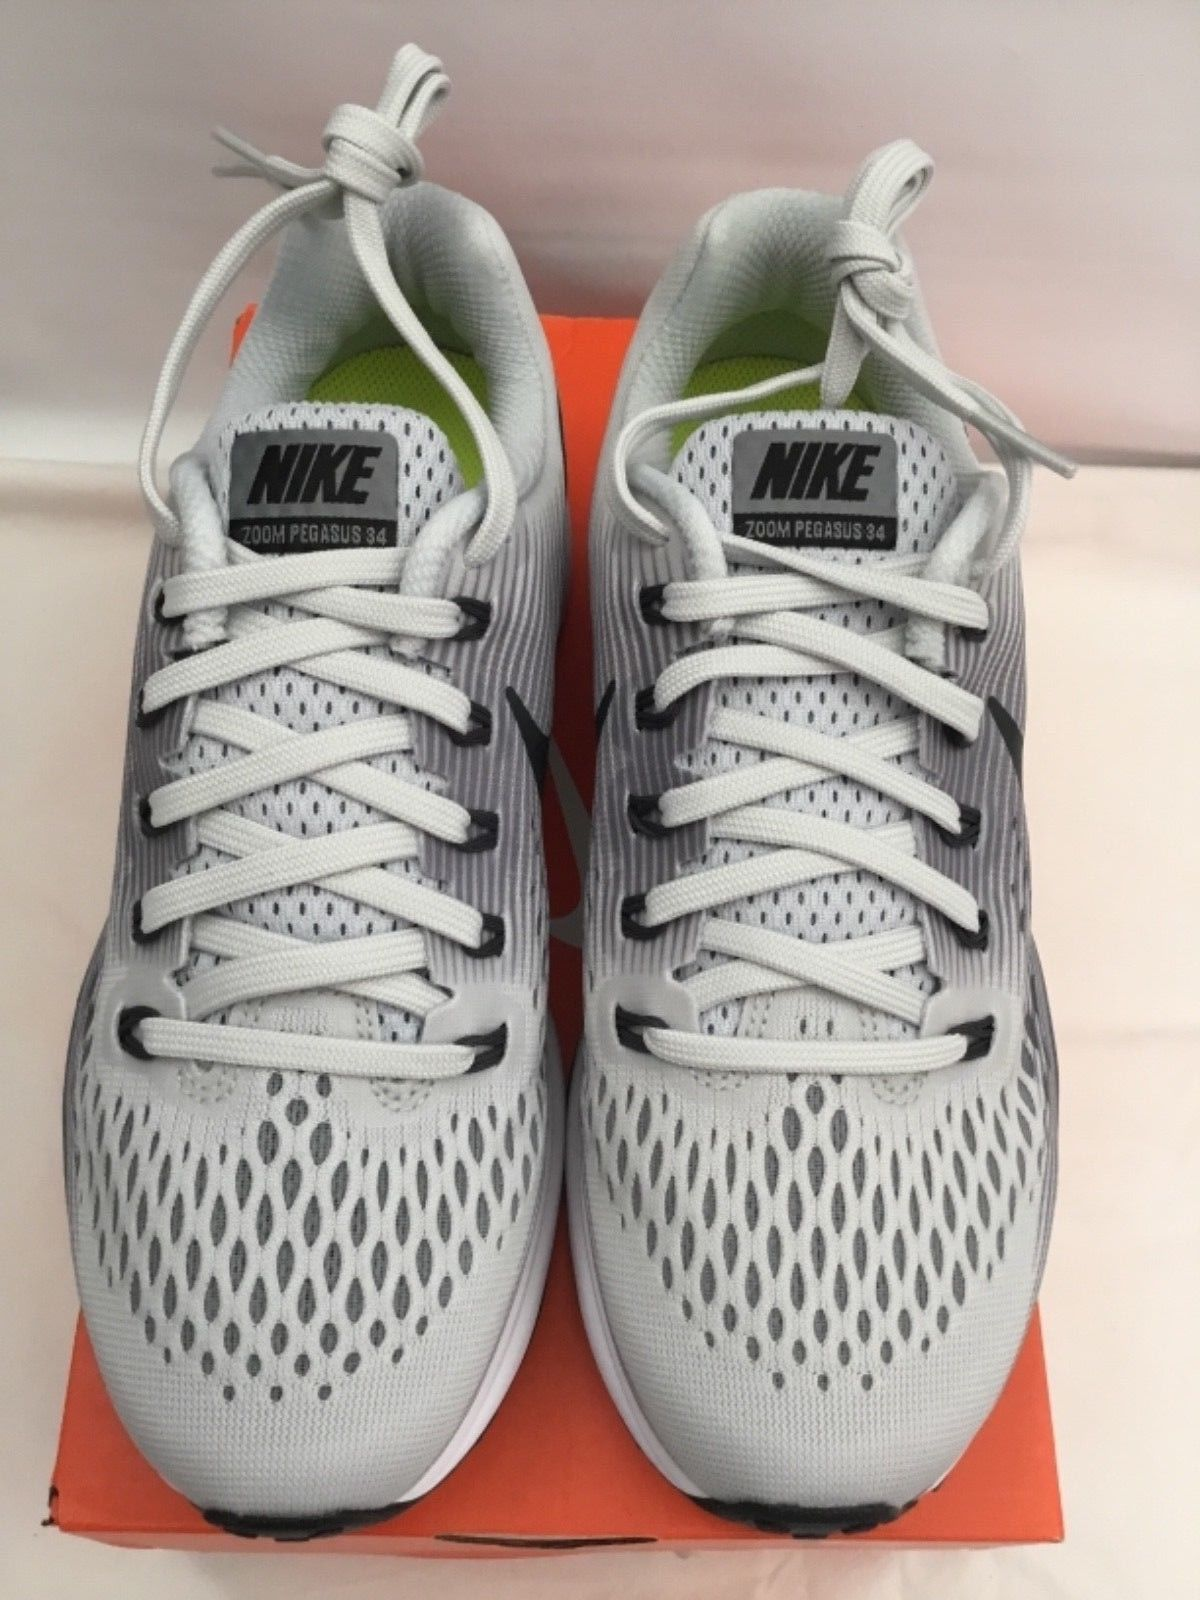 dabb1717ea762 ... Nike Womens Air Zoom Pegasus 34 Pure Platinum Anthracite Running Shoes  Size 6.5 ...